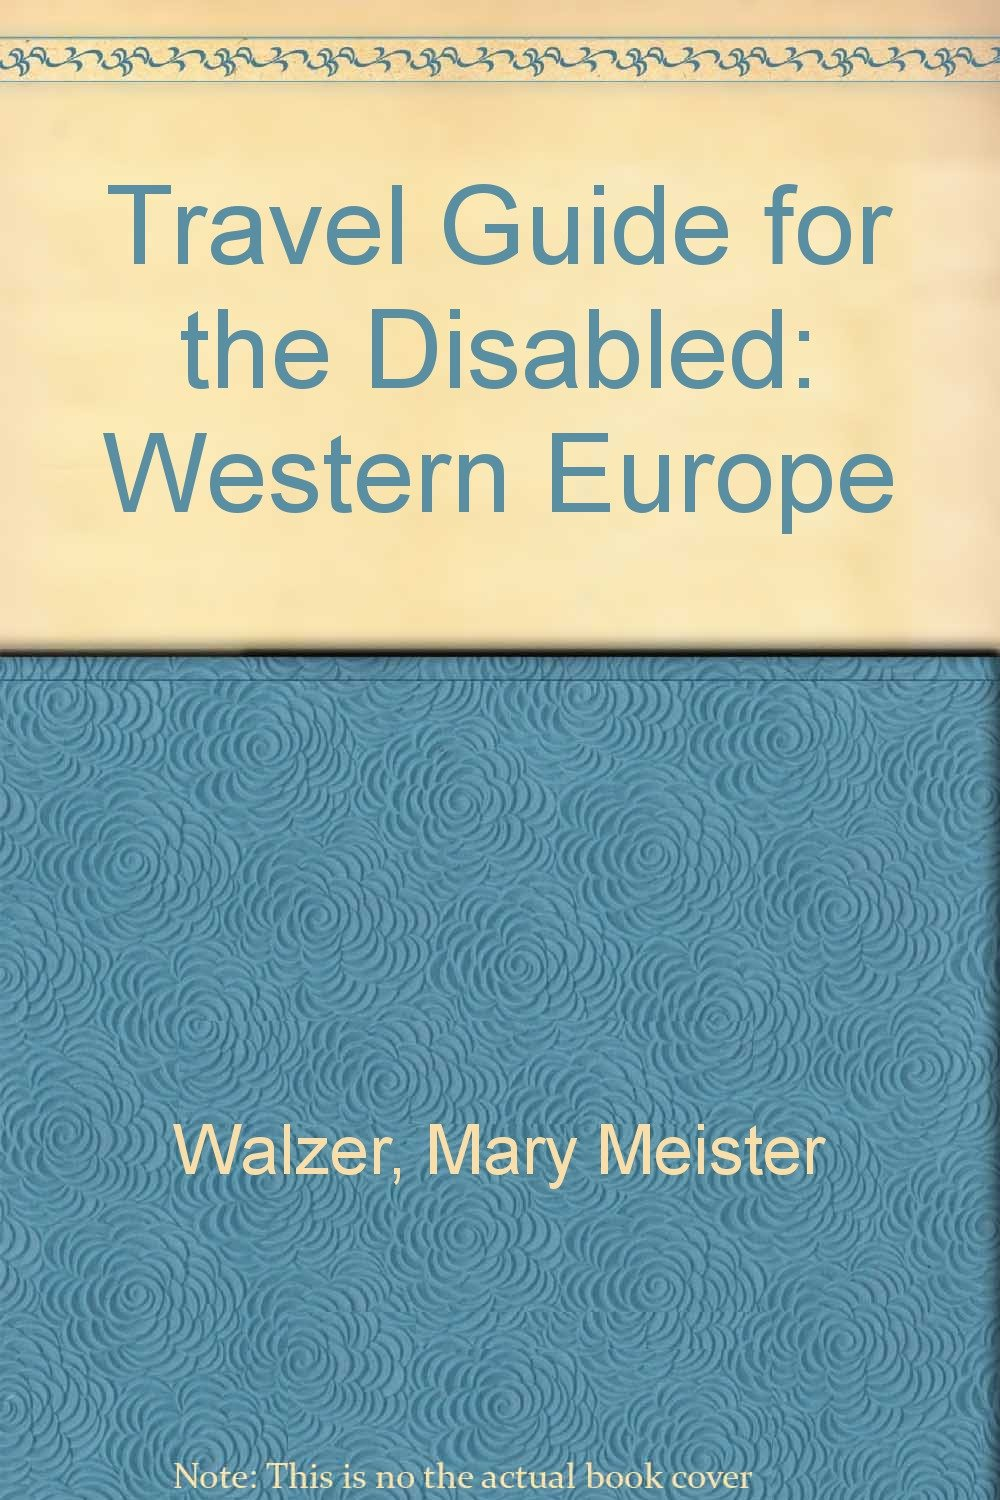 A Travel Guide for the Disabled: Western Europe